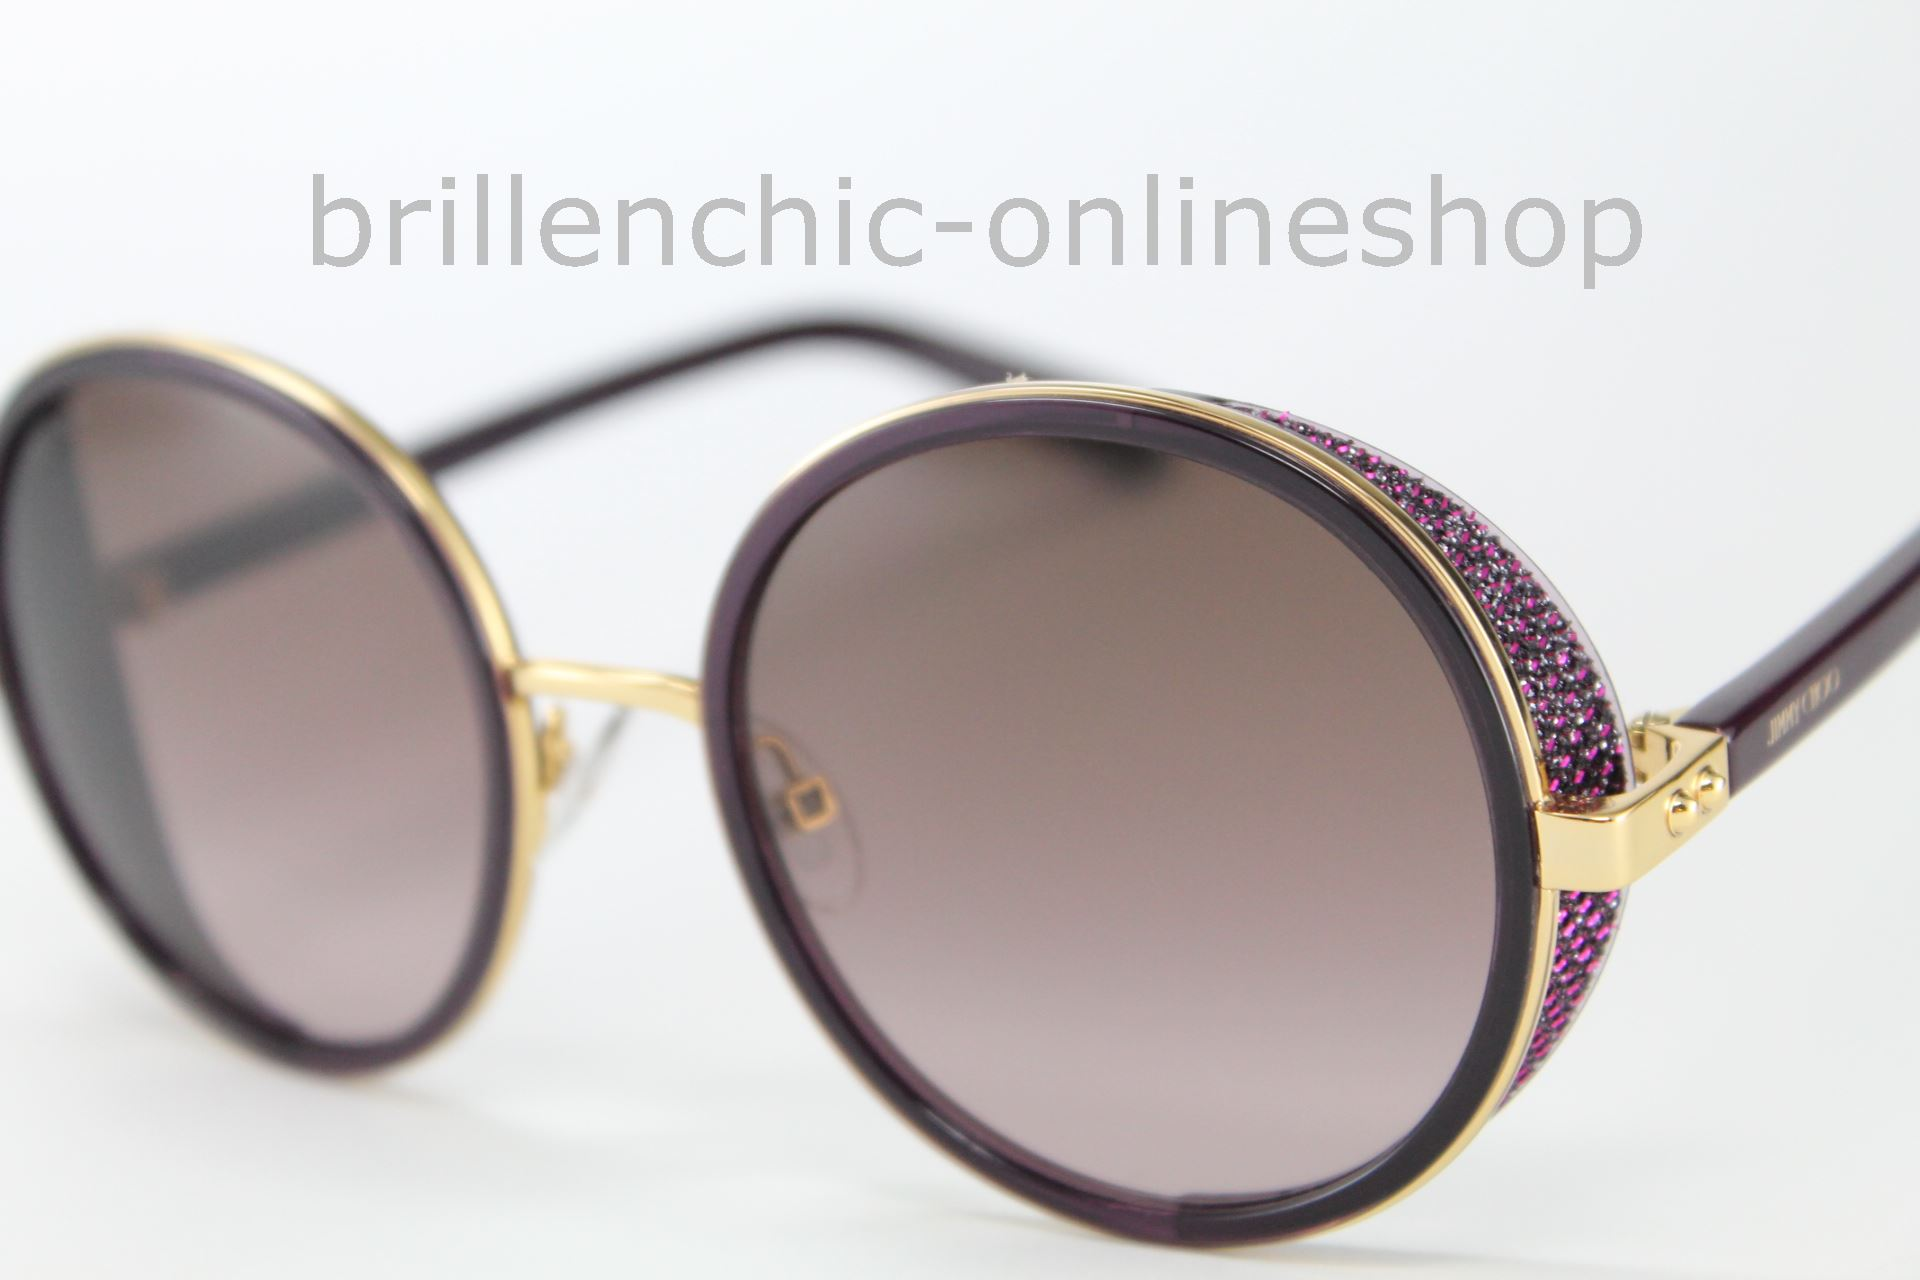 38dba314c868 Brillenchic-onlineshop in Berlin - JIMMY CHOO ANDIE N/S 1KJV6